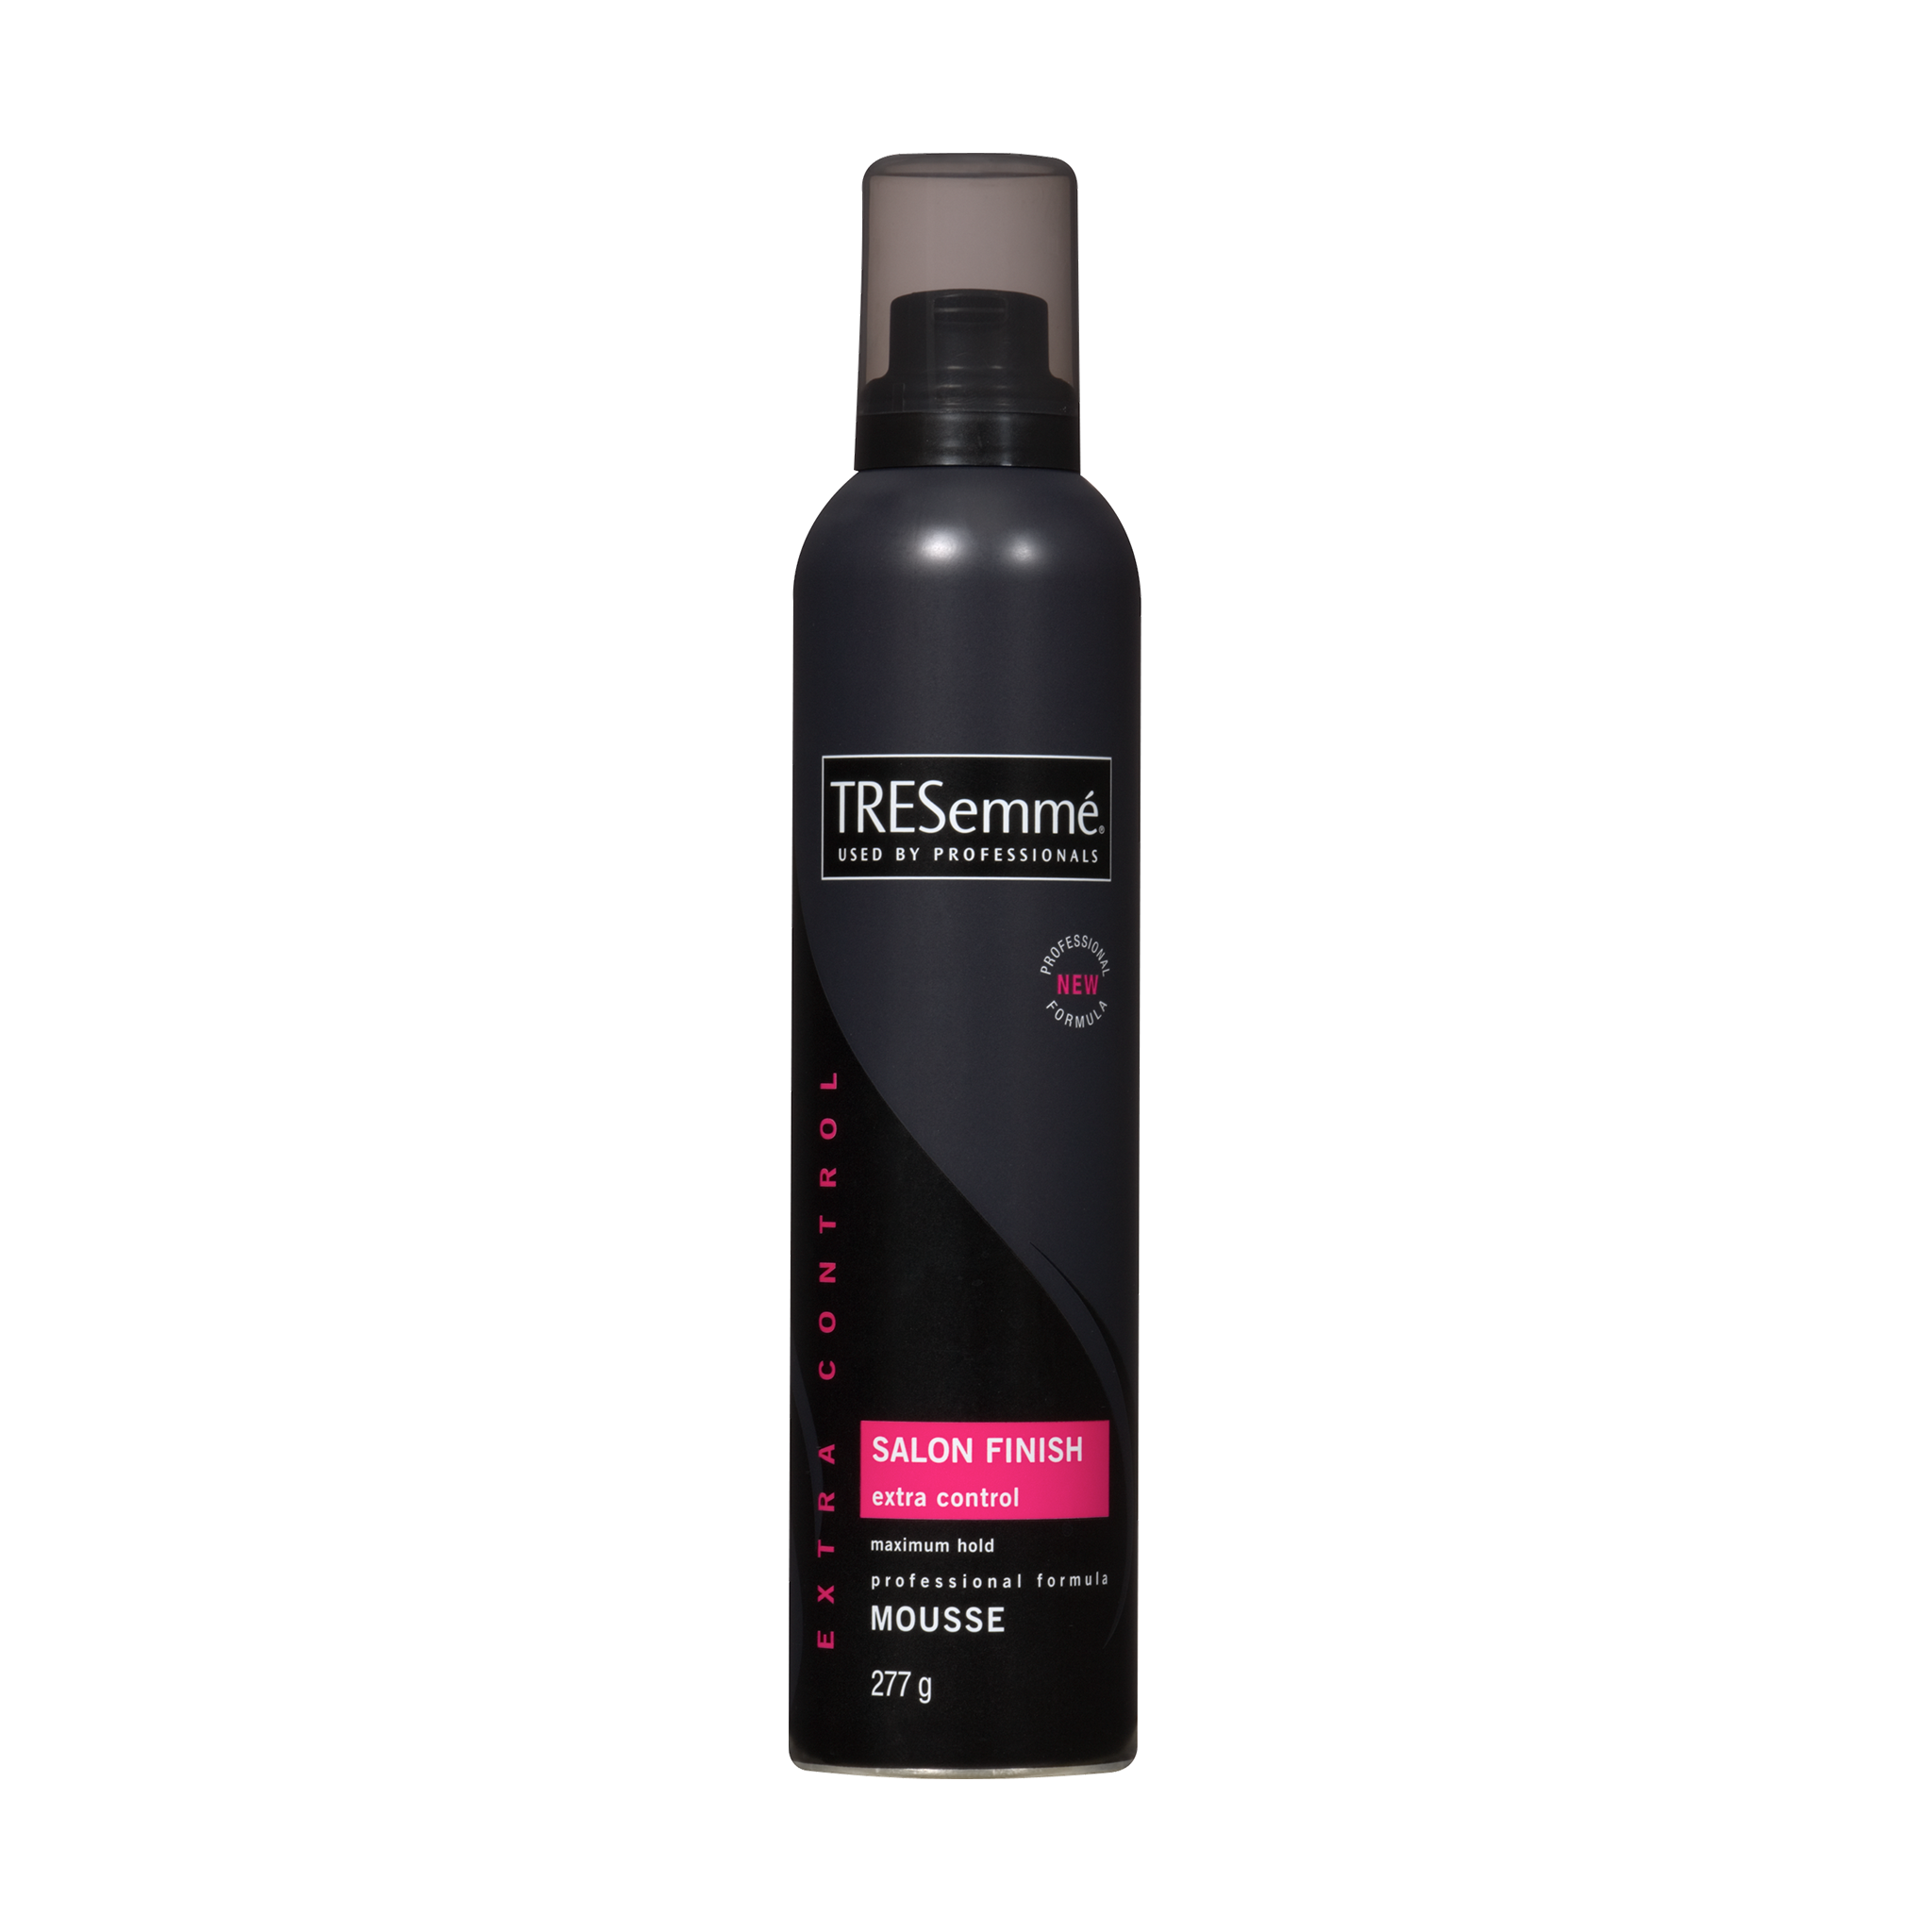 styling mousse for hair tresemm 233 salon finish mousse 277g 1408